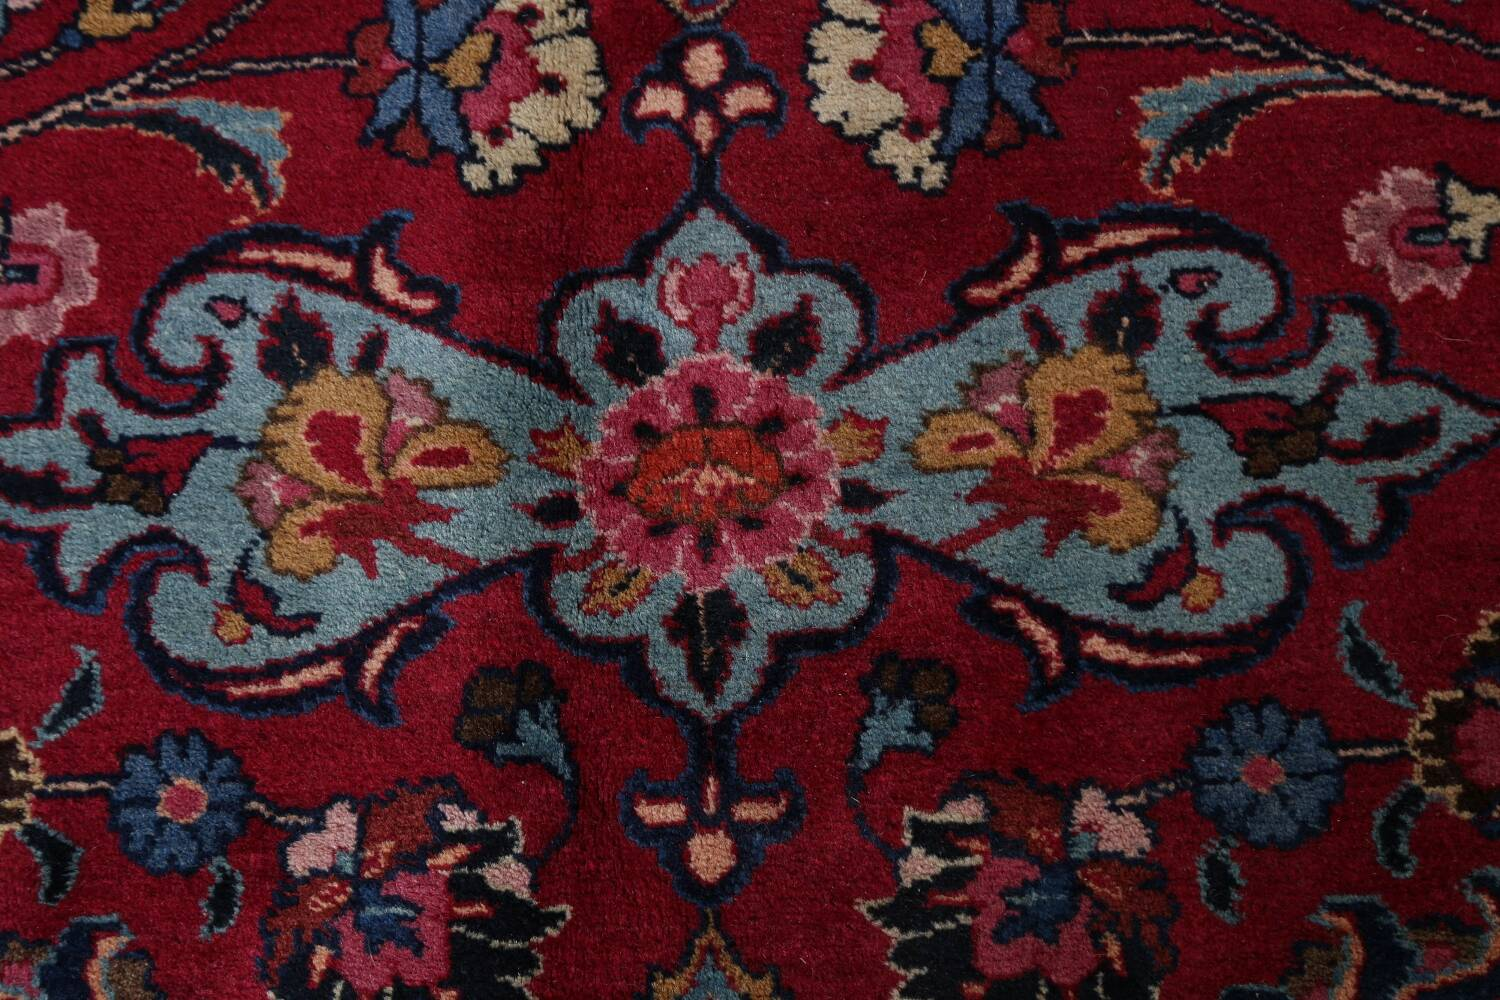 Antique Vegetable Dye Mood Persian Red Rug 11x15 image 9